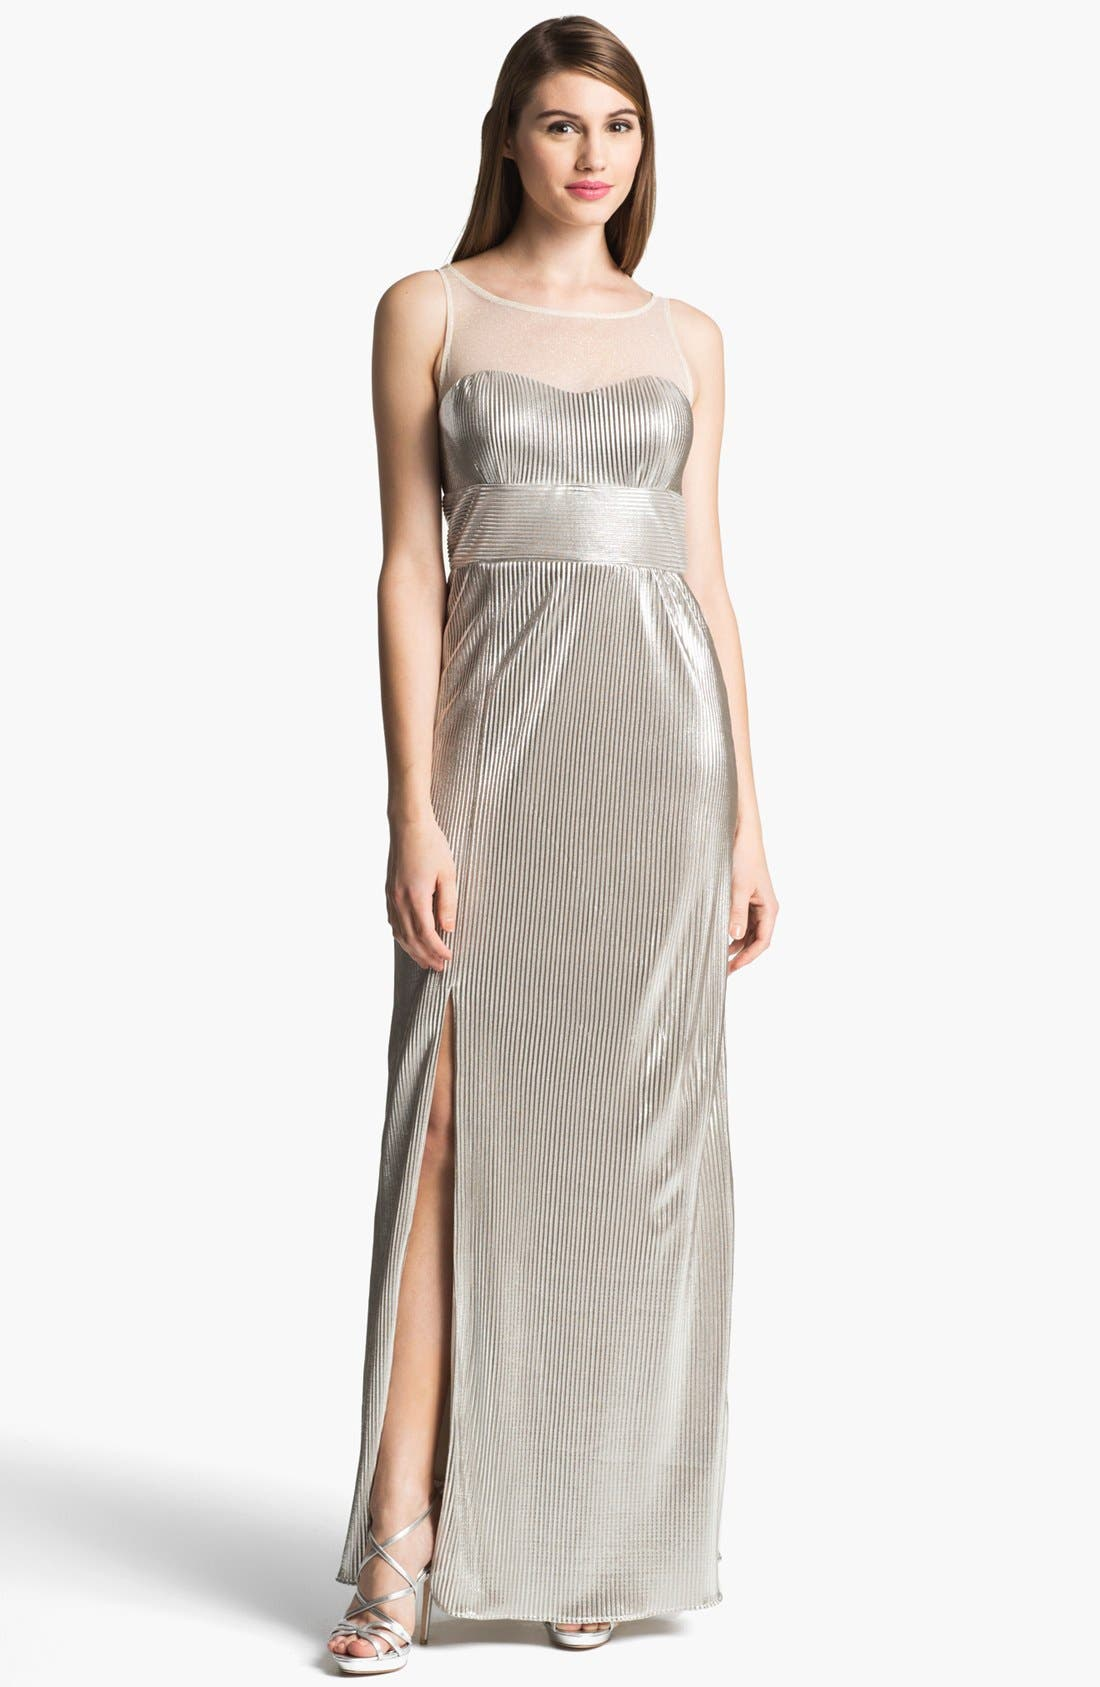 Alternate Image 1 Selected - Hailey by Adrianna Papell Metallic Illusion Yoke Gown (Online Only)